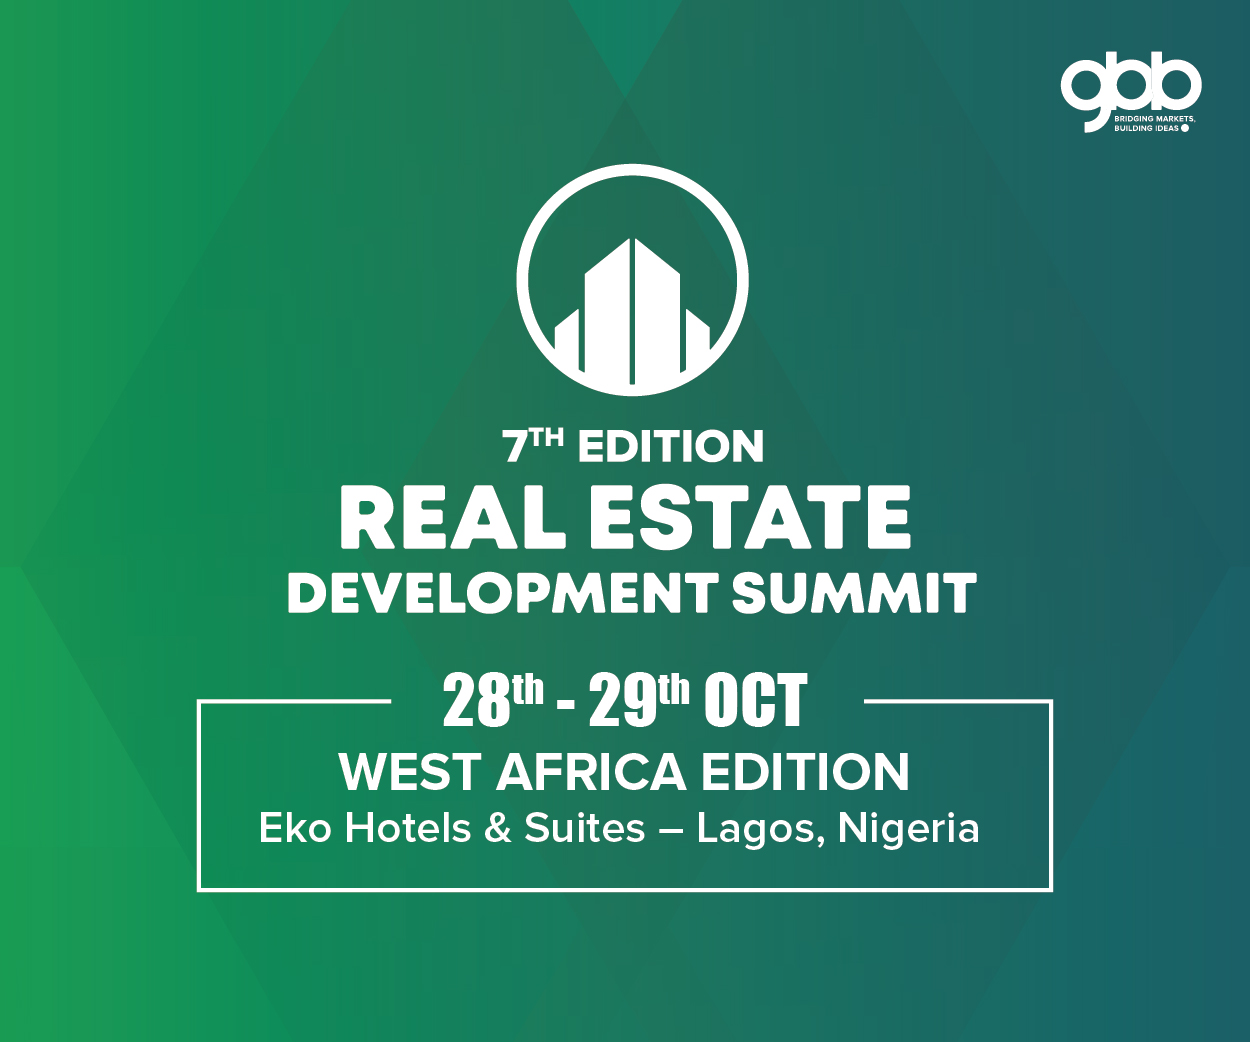 REAL ESTATE West Africa